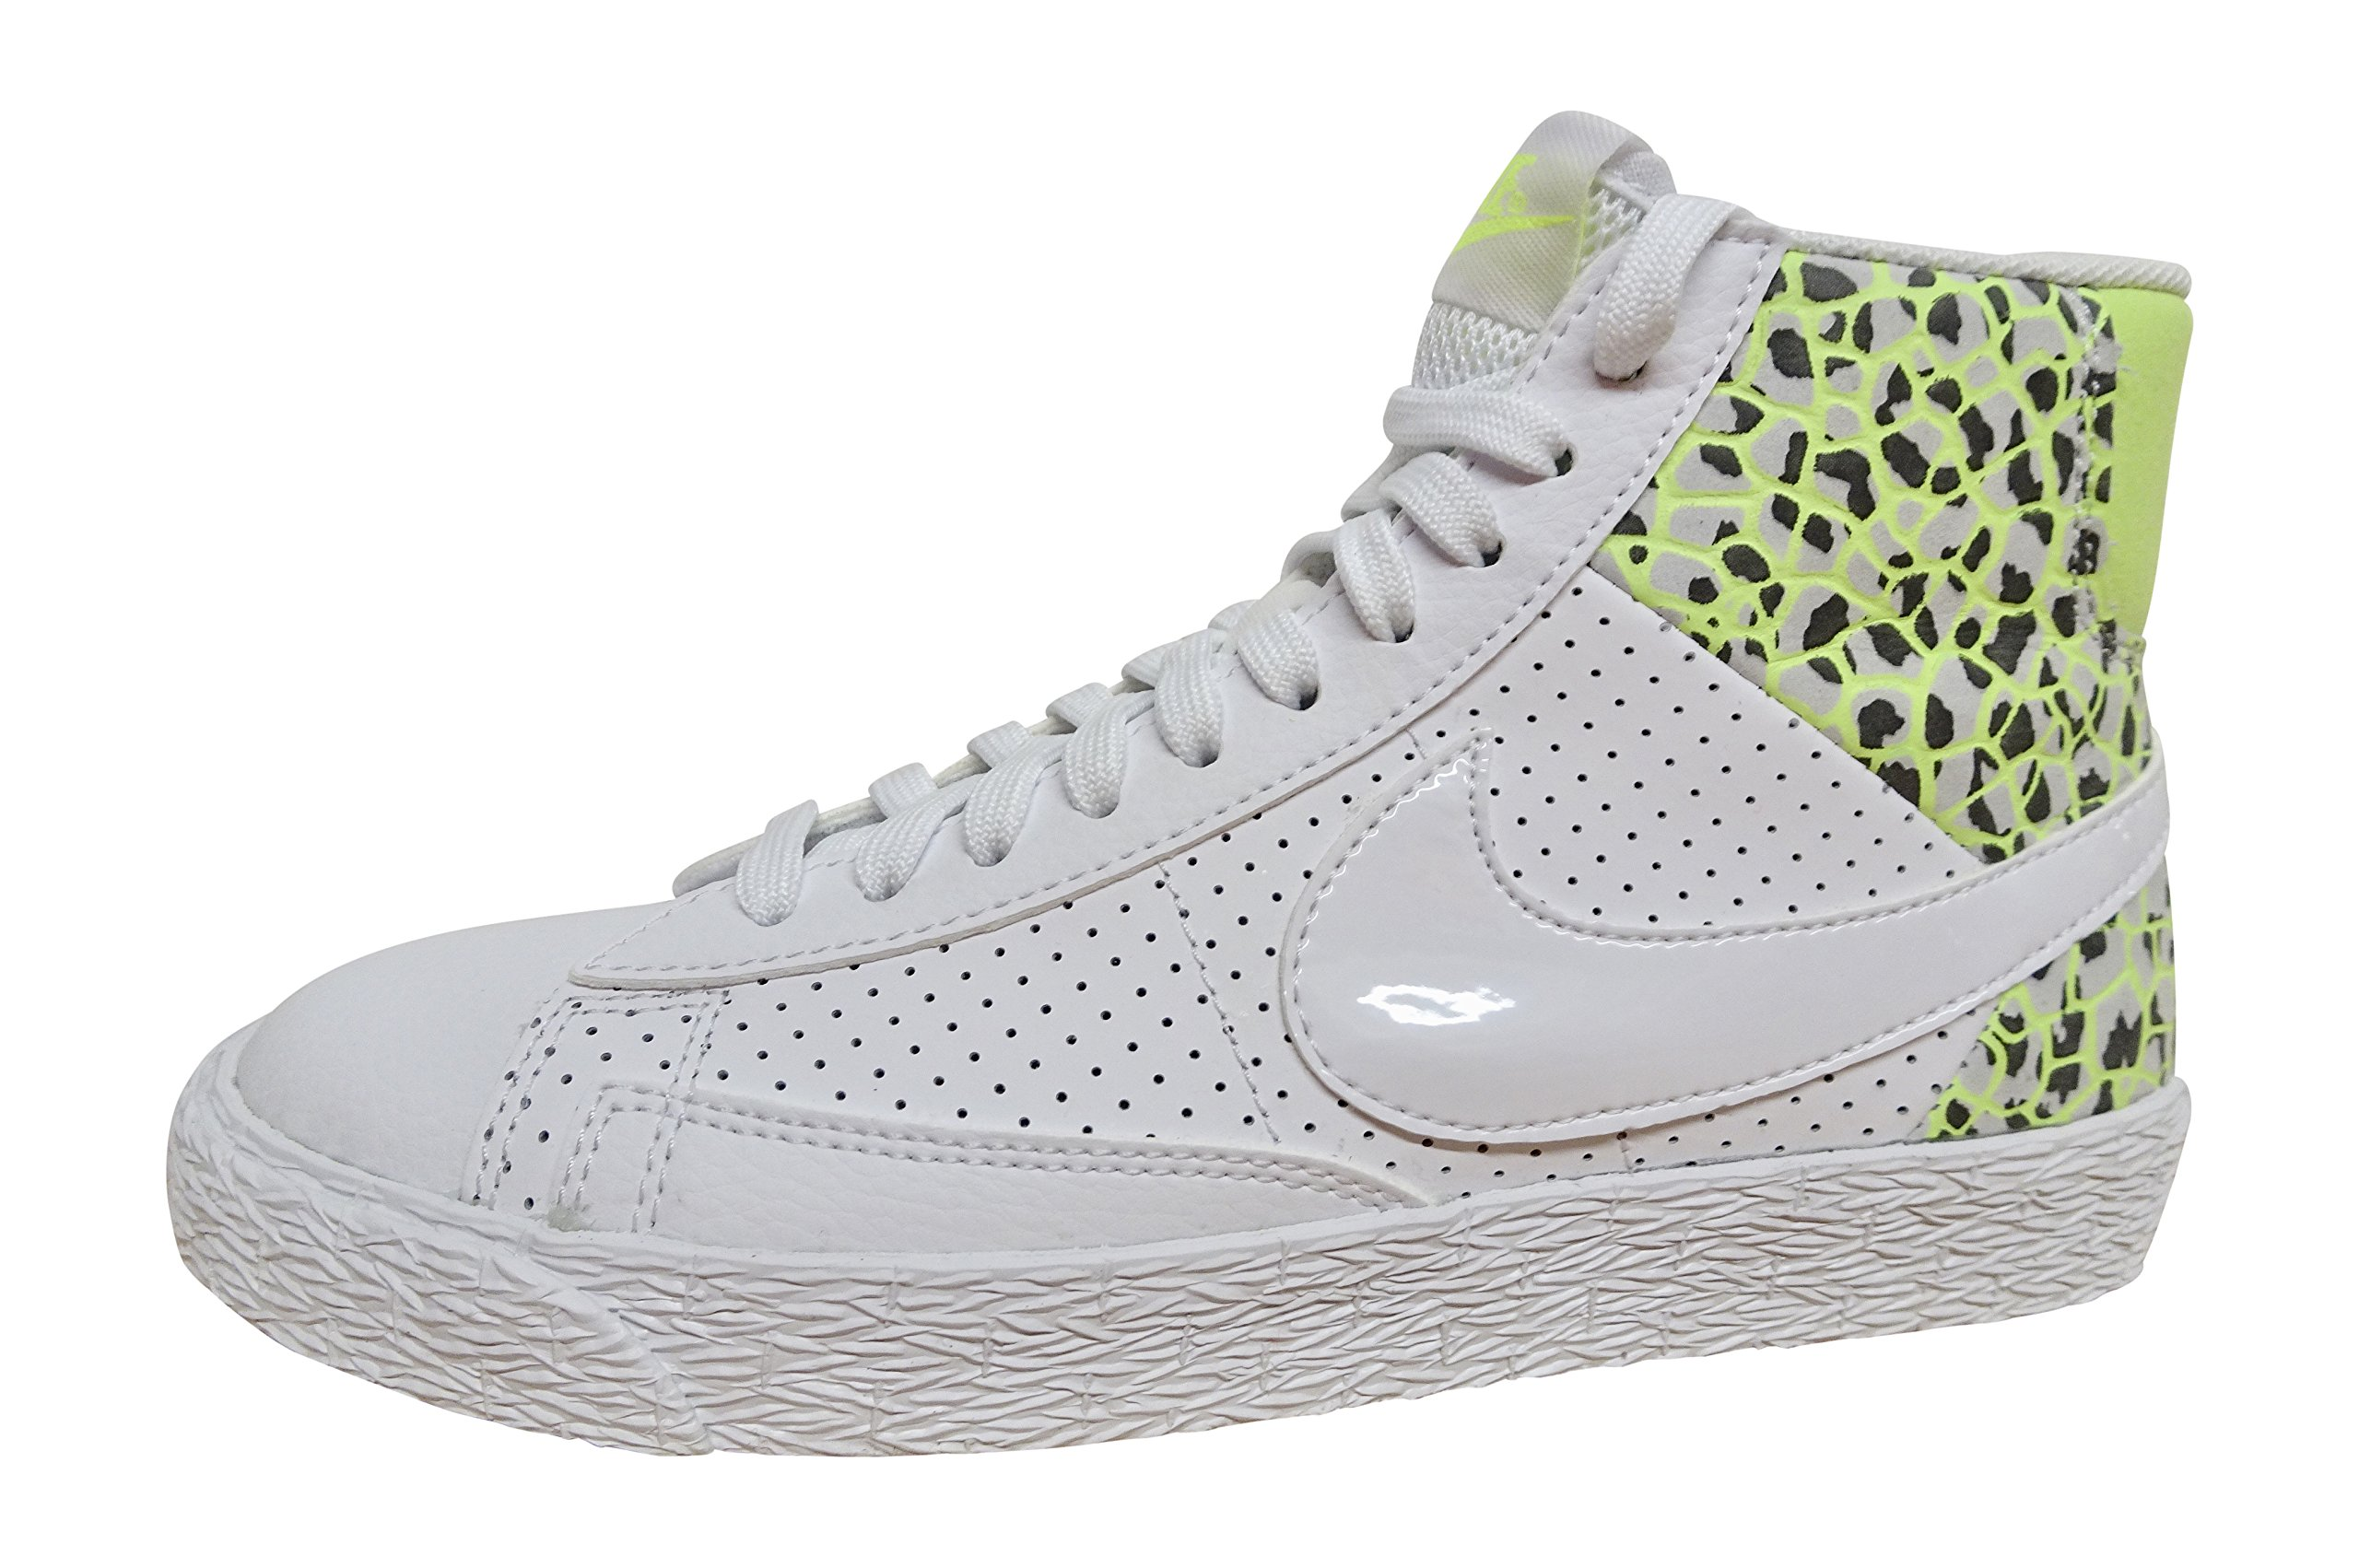 NIKE Womens Blazer mid PRM hi top Trainers 403729 Sneakers Shoes (US 5.5, White Ghost Green Pure Platinum 105)